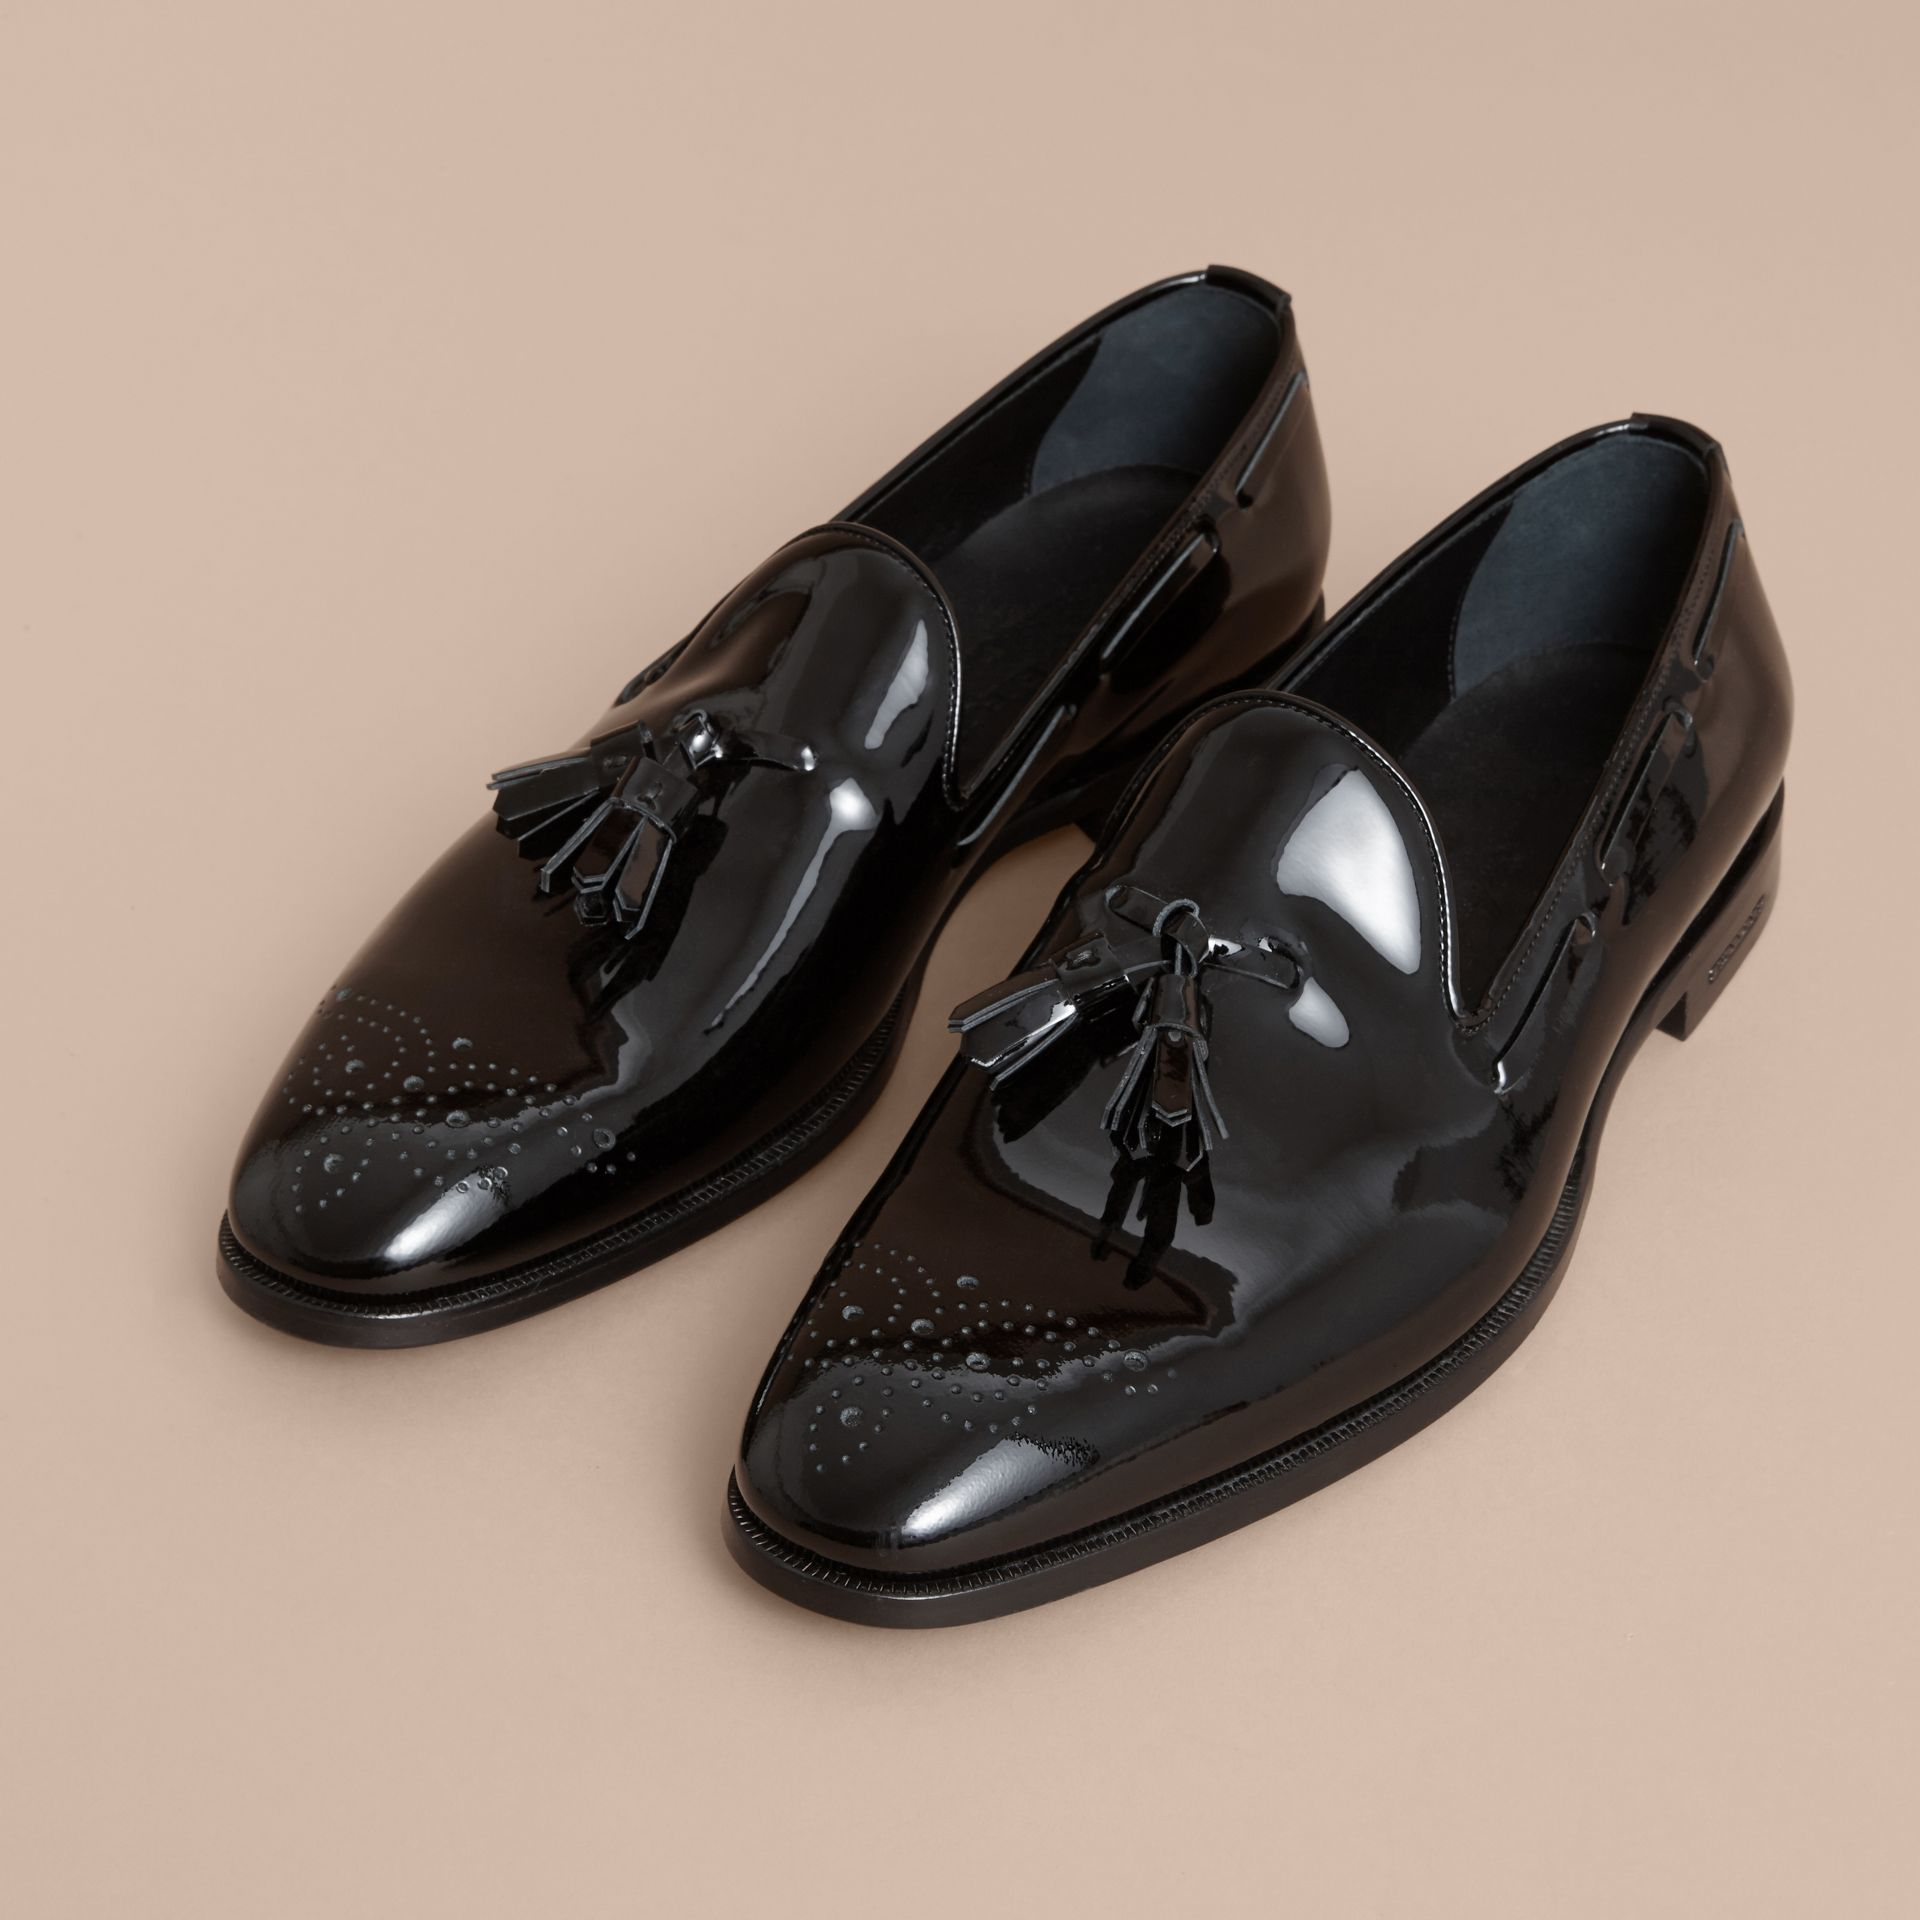 Tasselled Patent Leather Loafers in Black - Men | Burberry Canada - gallery image 4